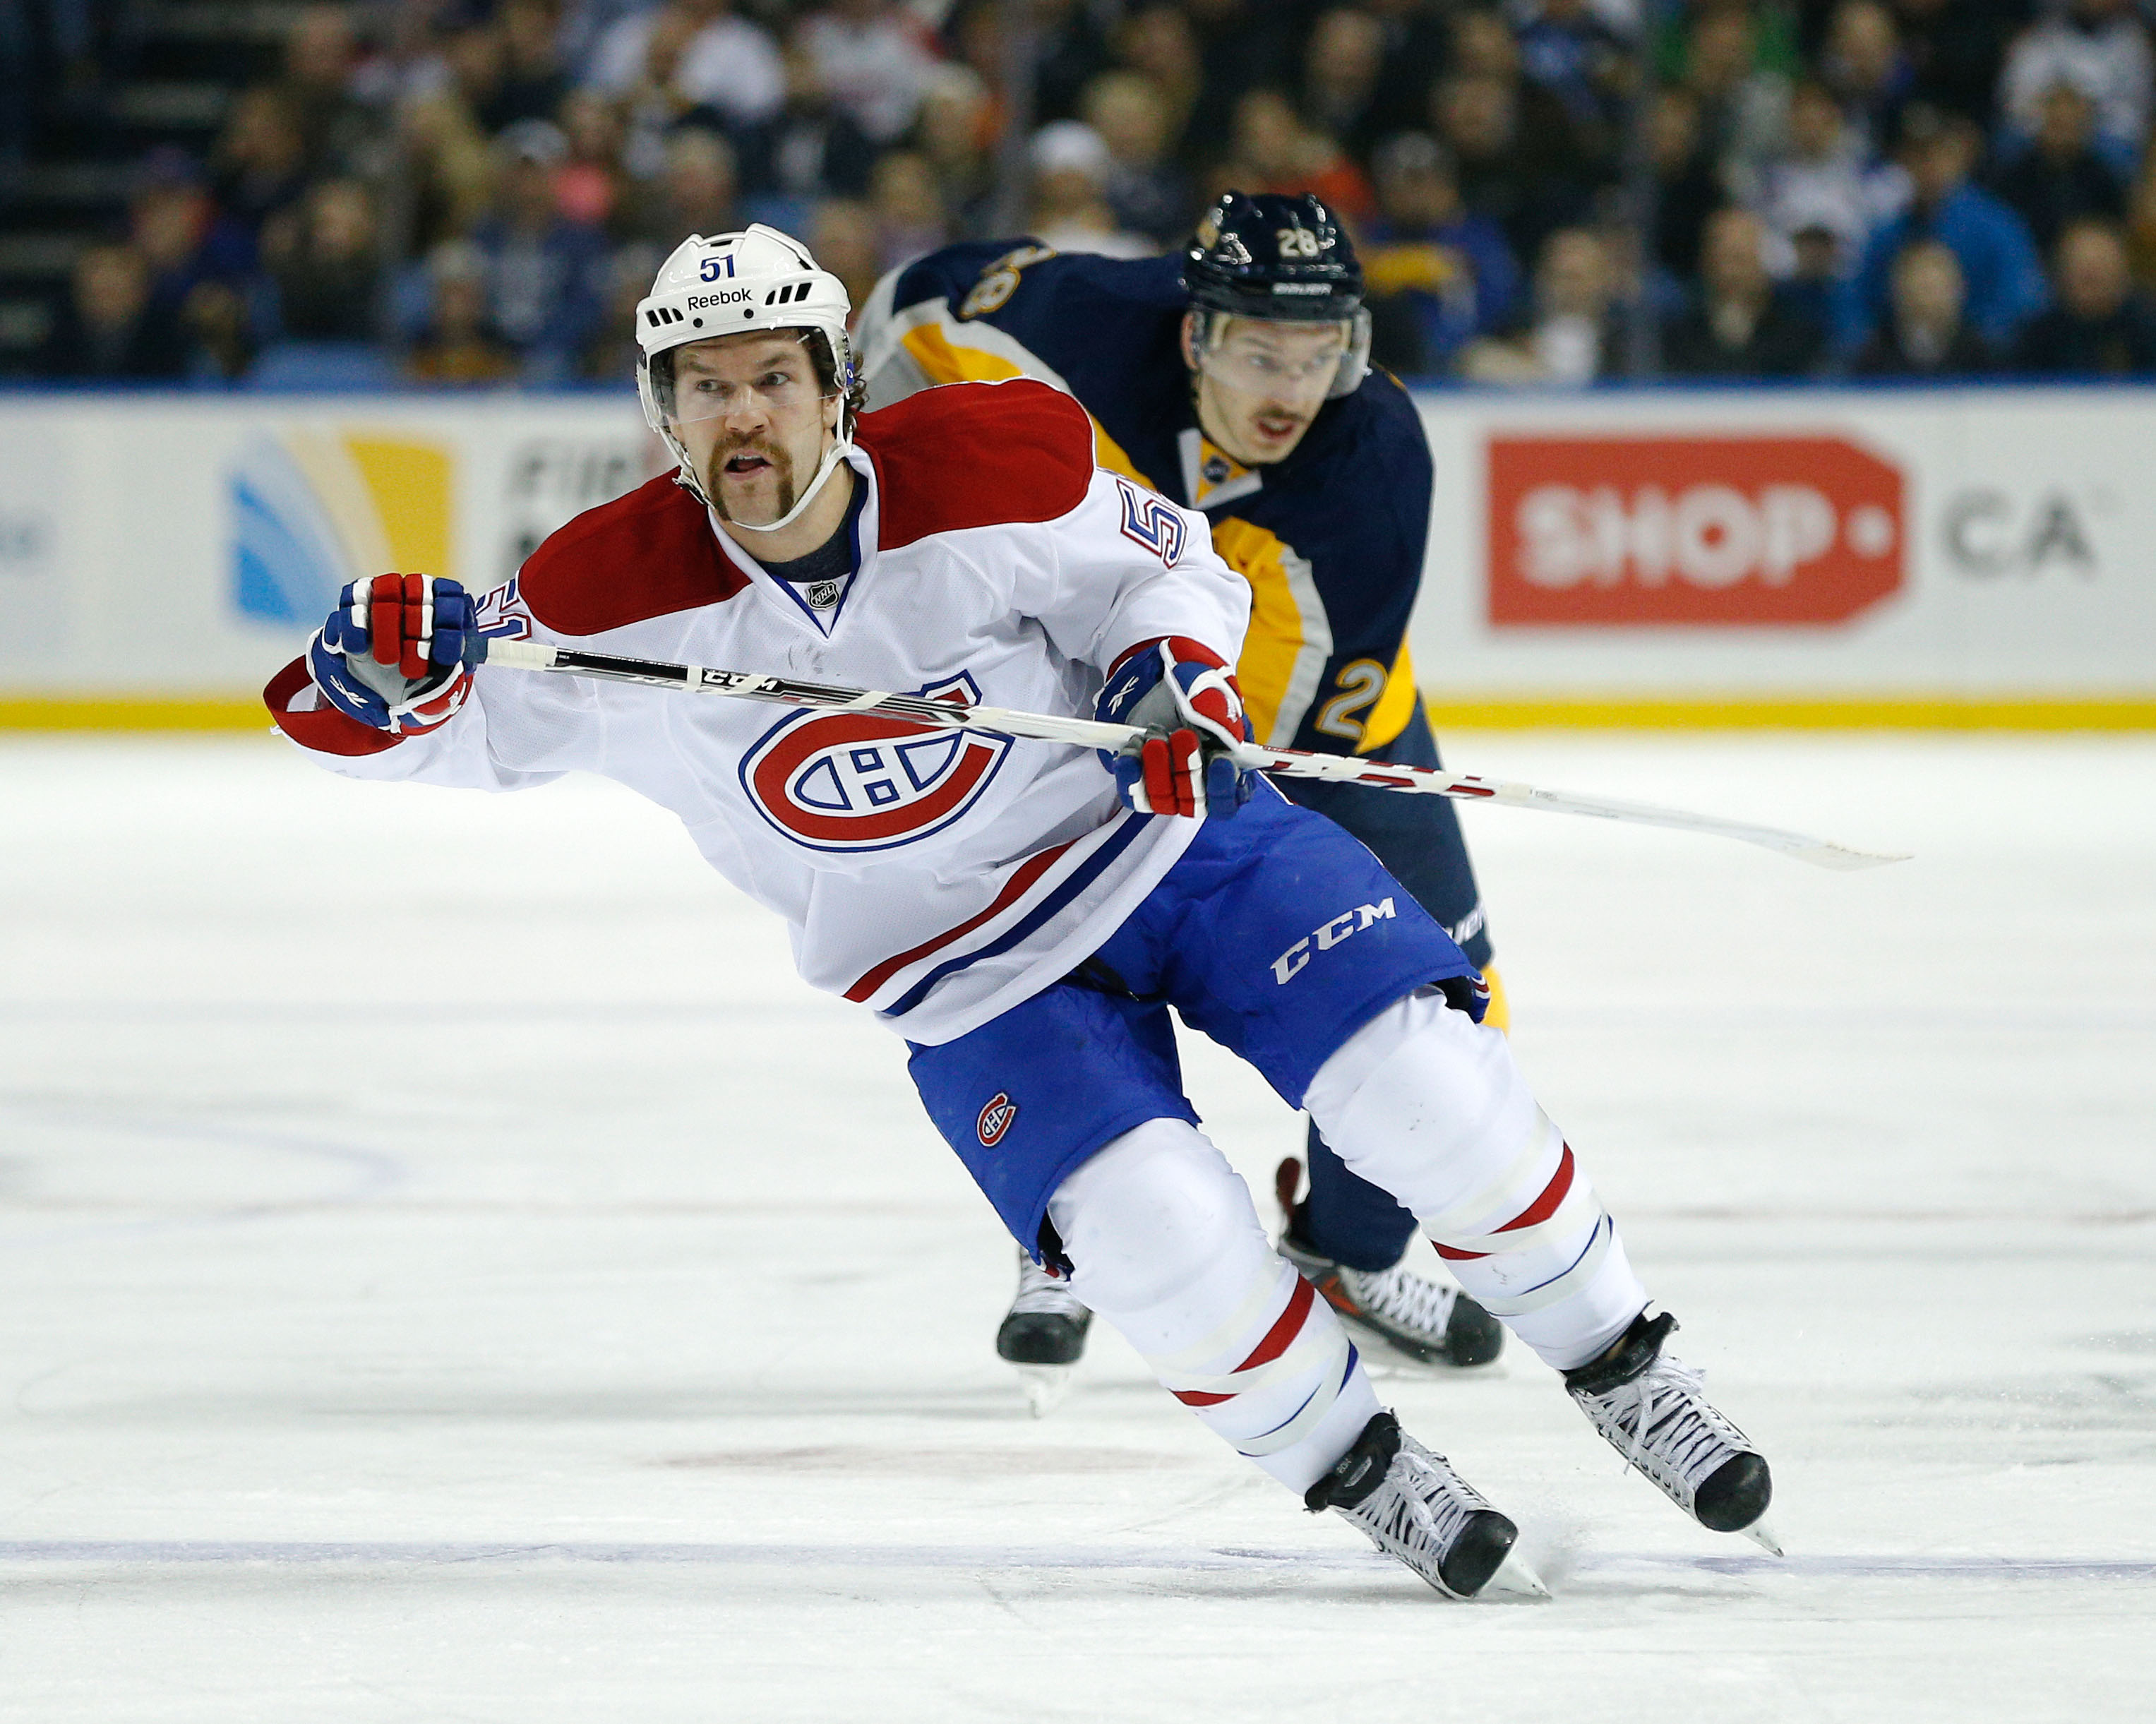 Should the Habs deal or keep DD?